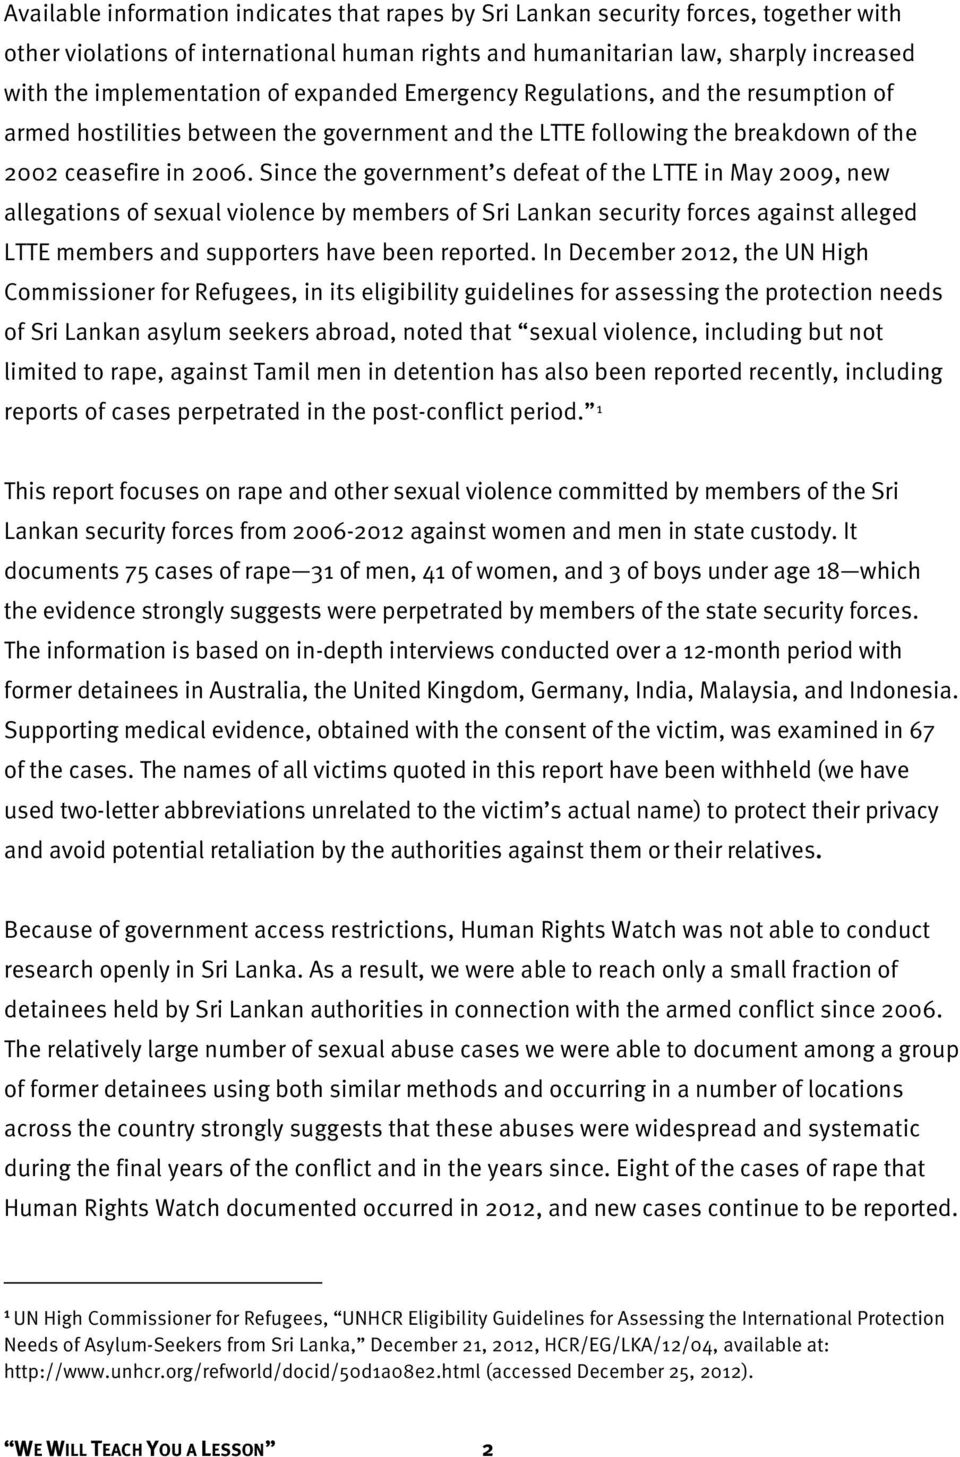 Since the government s defeat of the LTTE in May 2009, new allegations of sexual violence by members of Sri Lankan security forces against alleged LTTE members and supporters have been reported.